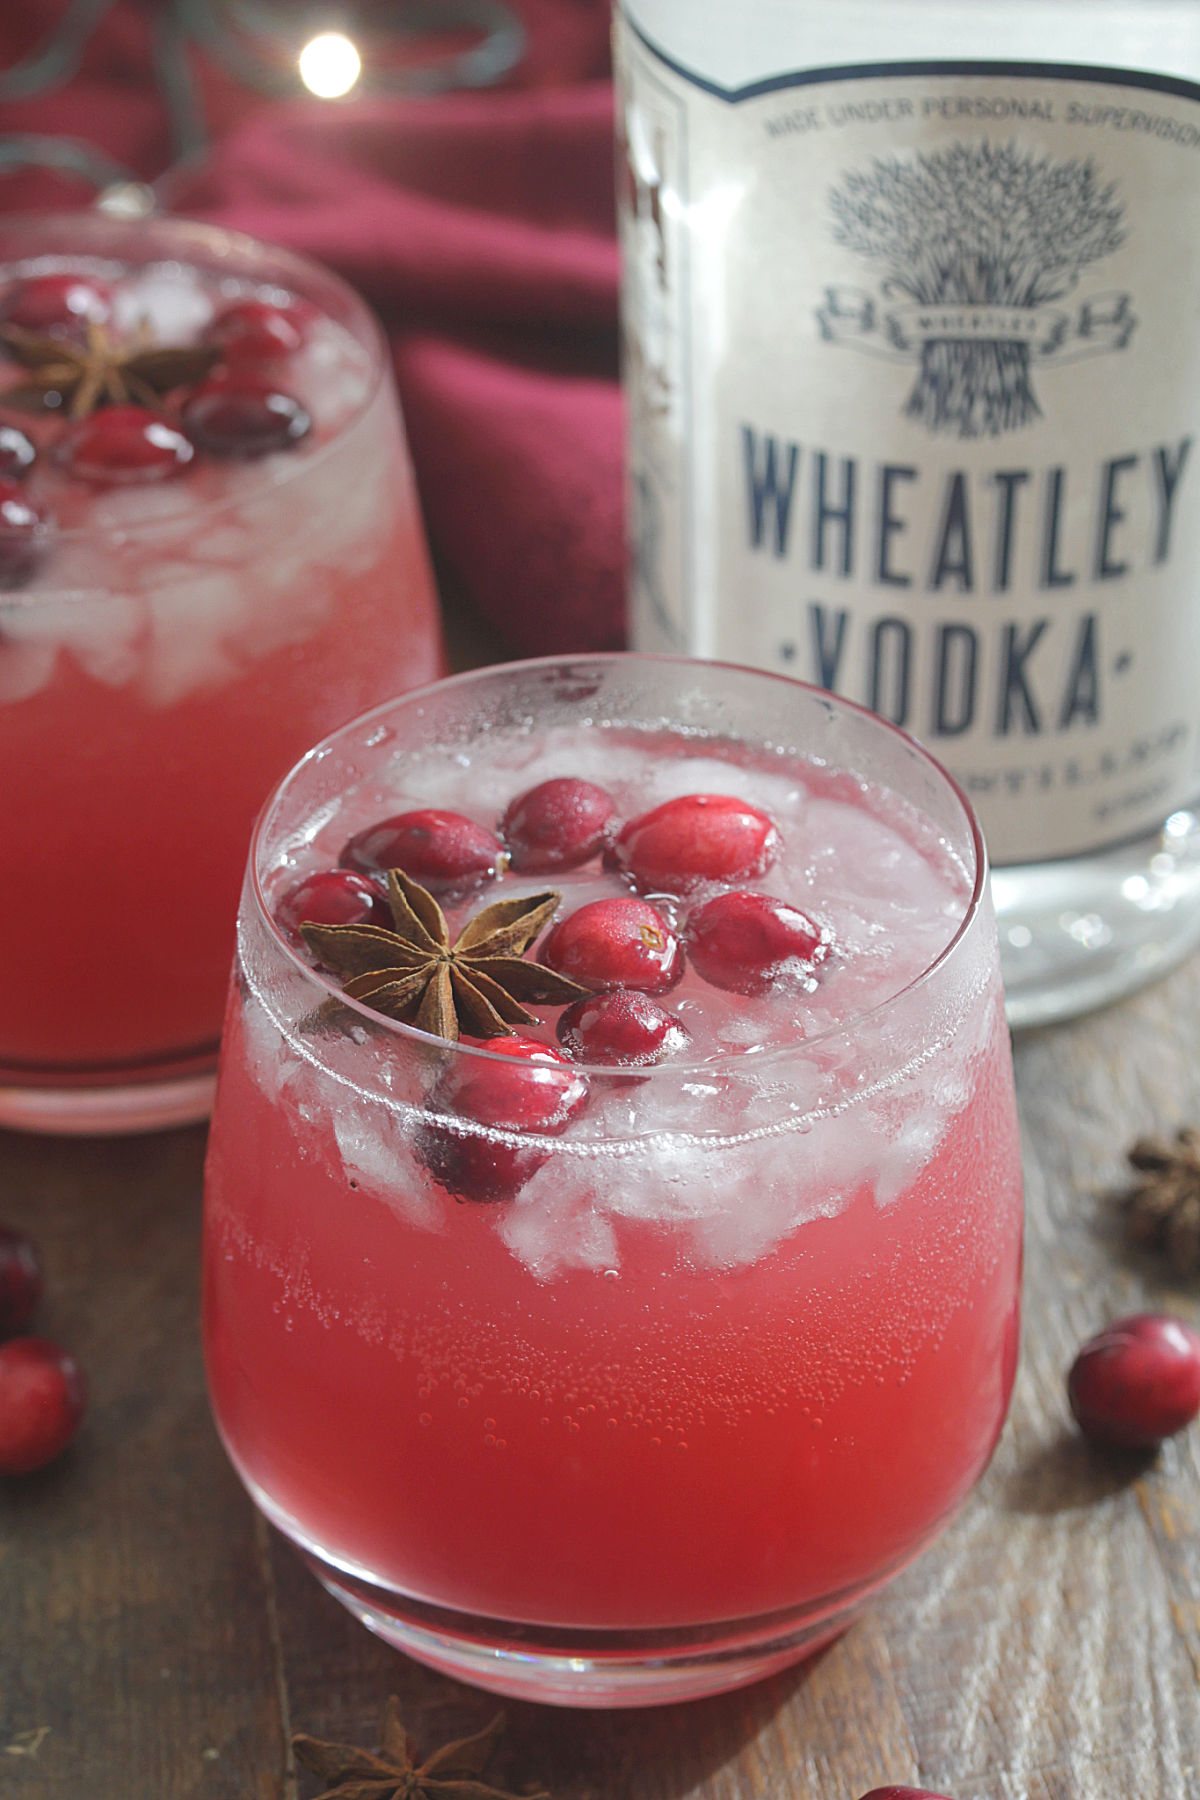 Bottle of Wheatley Vodka next to red holiday drink with cranberries